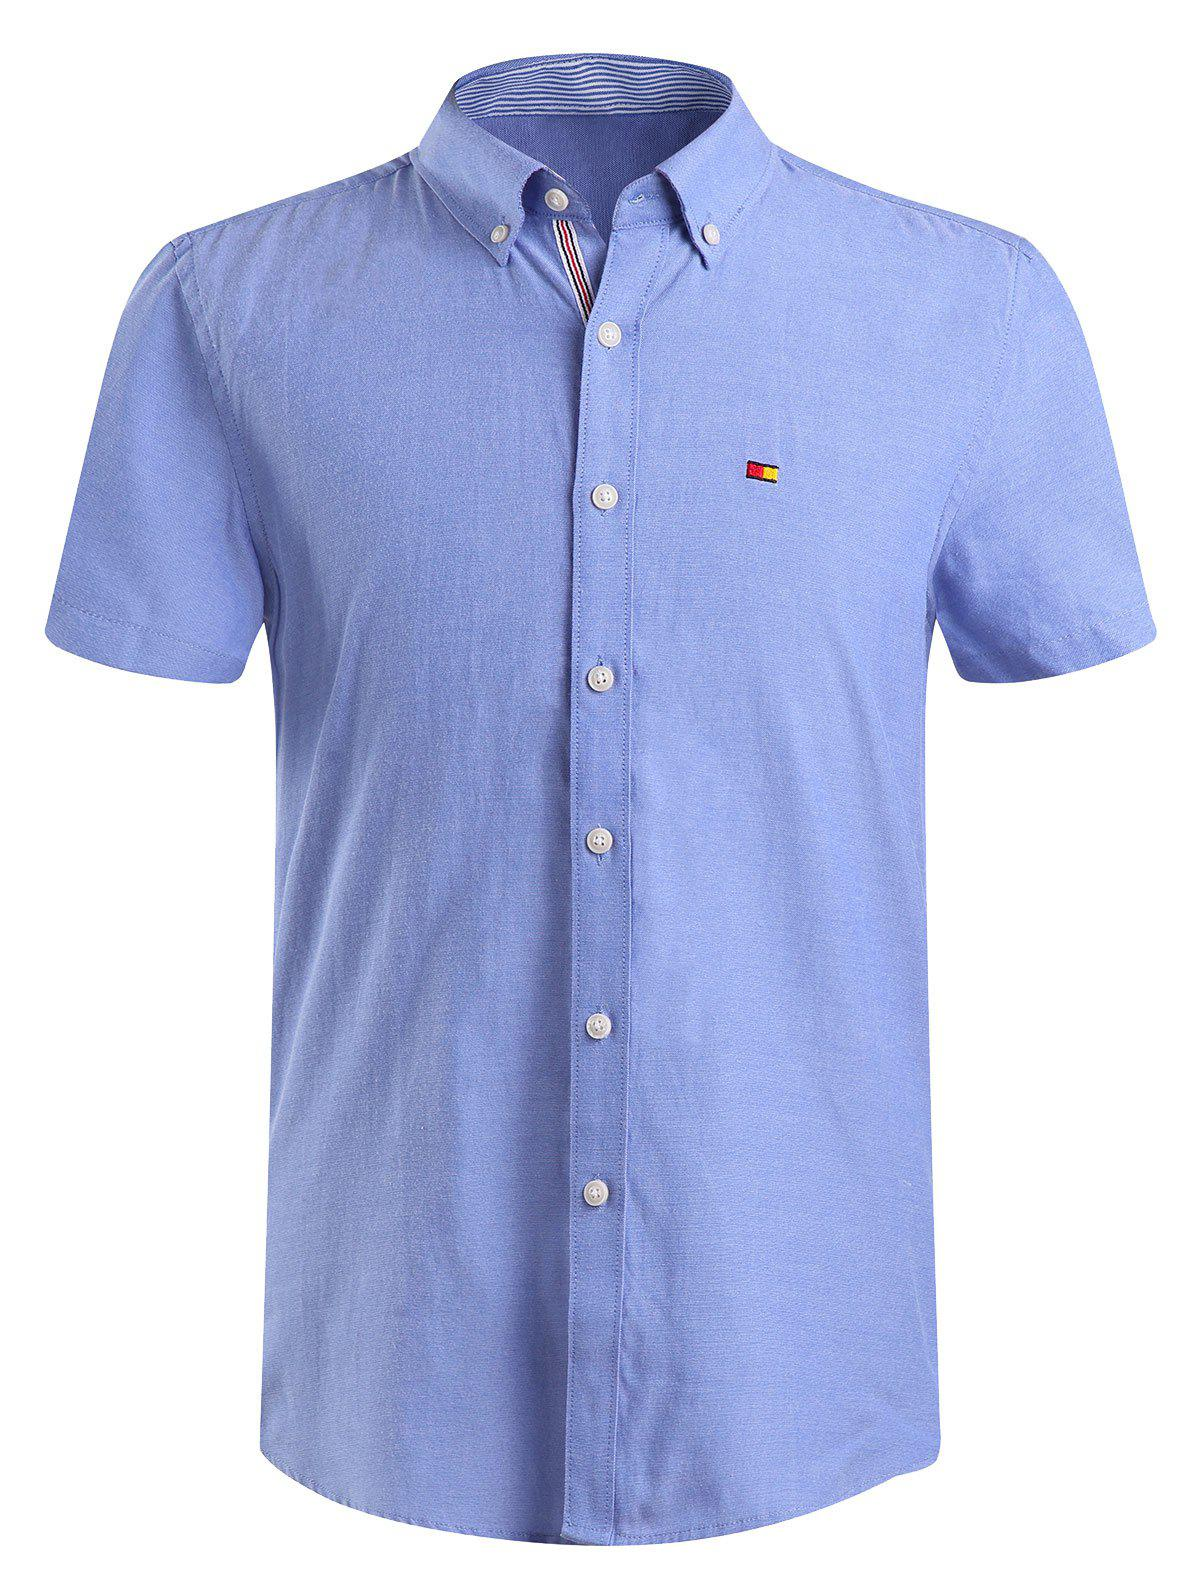 Men 39 S Fashion Solid Color Button Down Shirt Blue Xl In